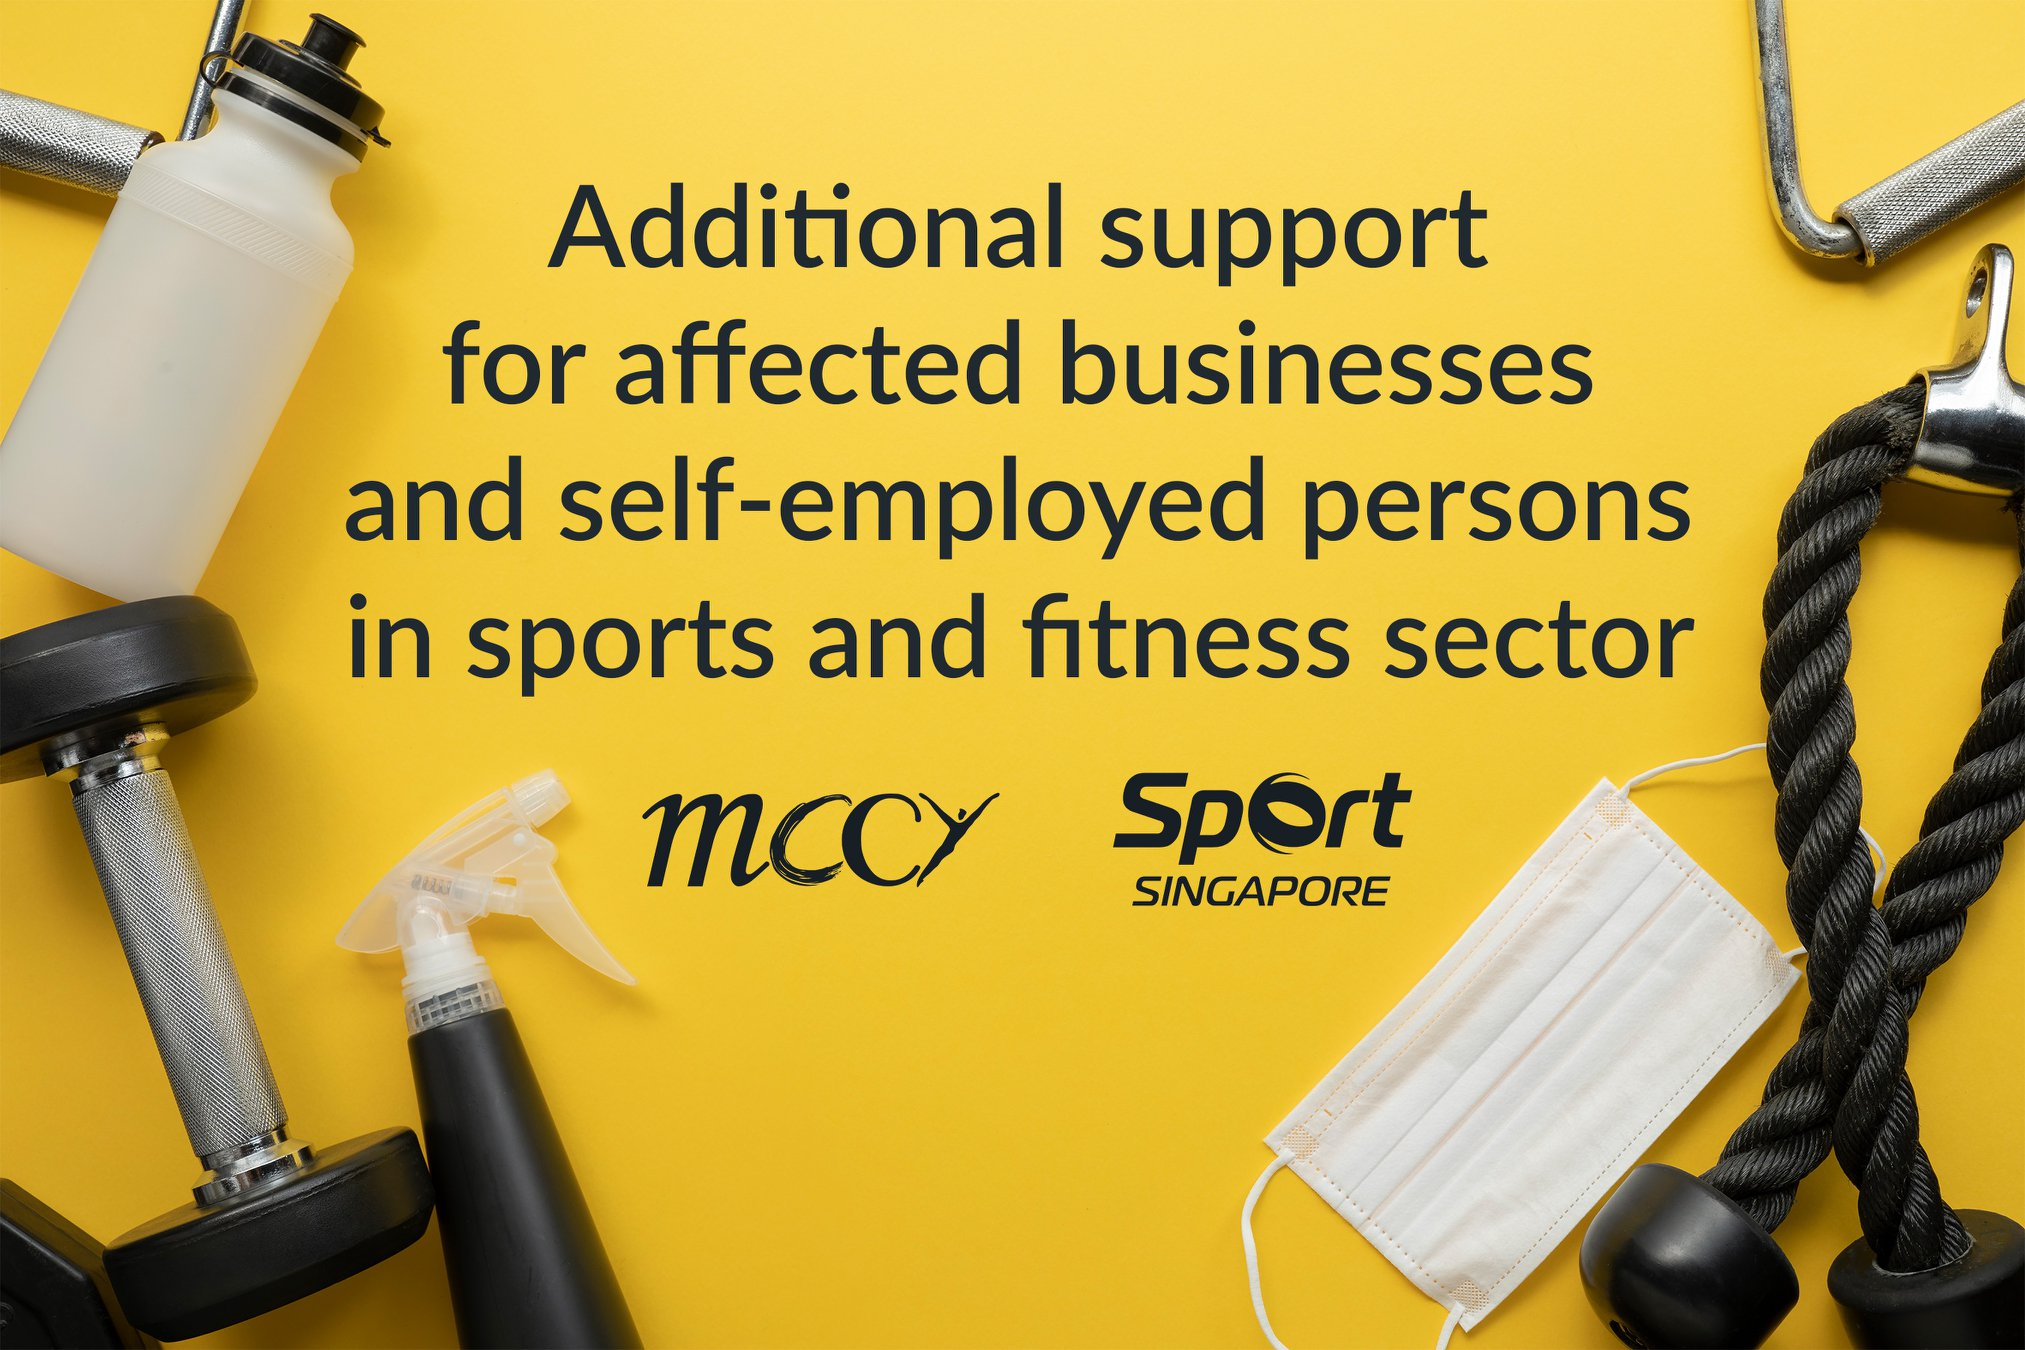 SportSG updates Sport Resilience Package for businesses and SEPs